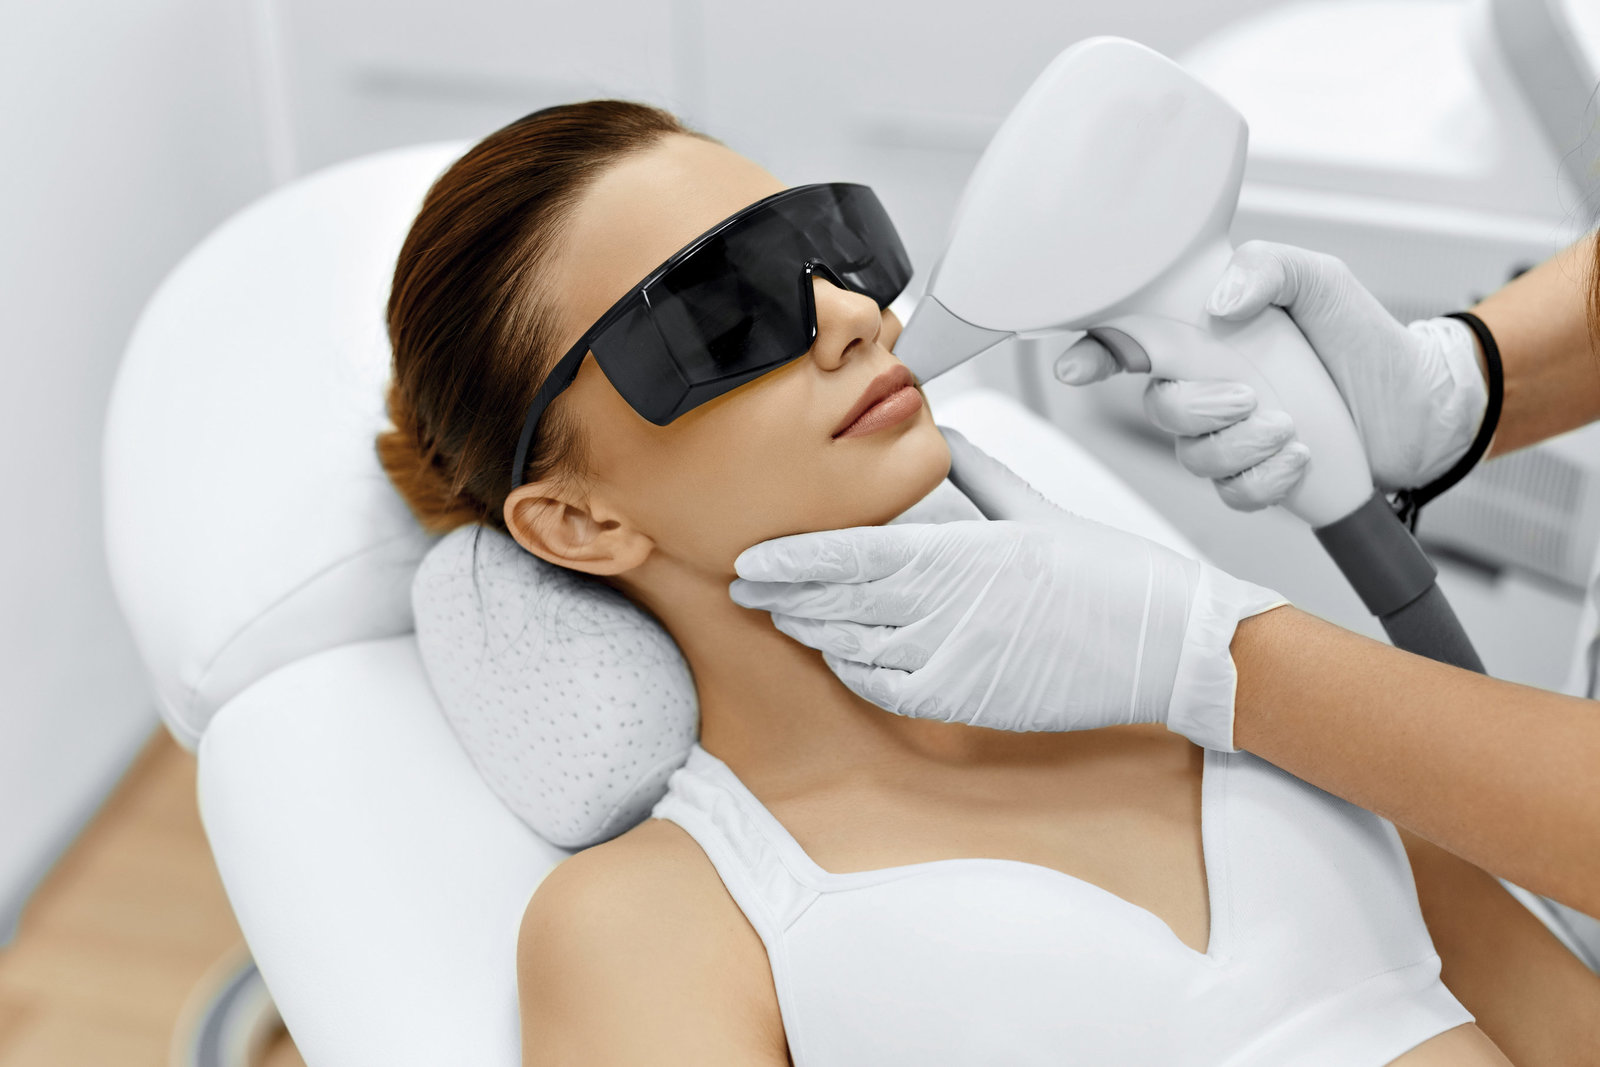 Face-Care.-Facial-Laser-Hair-Removal.-Epilation.-Smooth-Skin-000081313063_Large